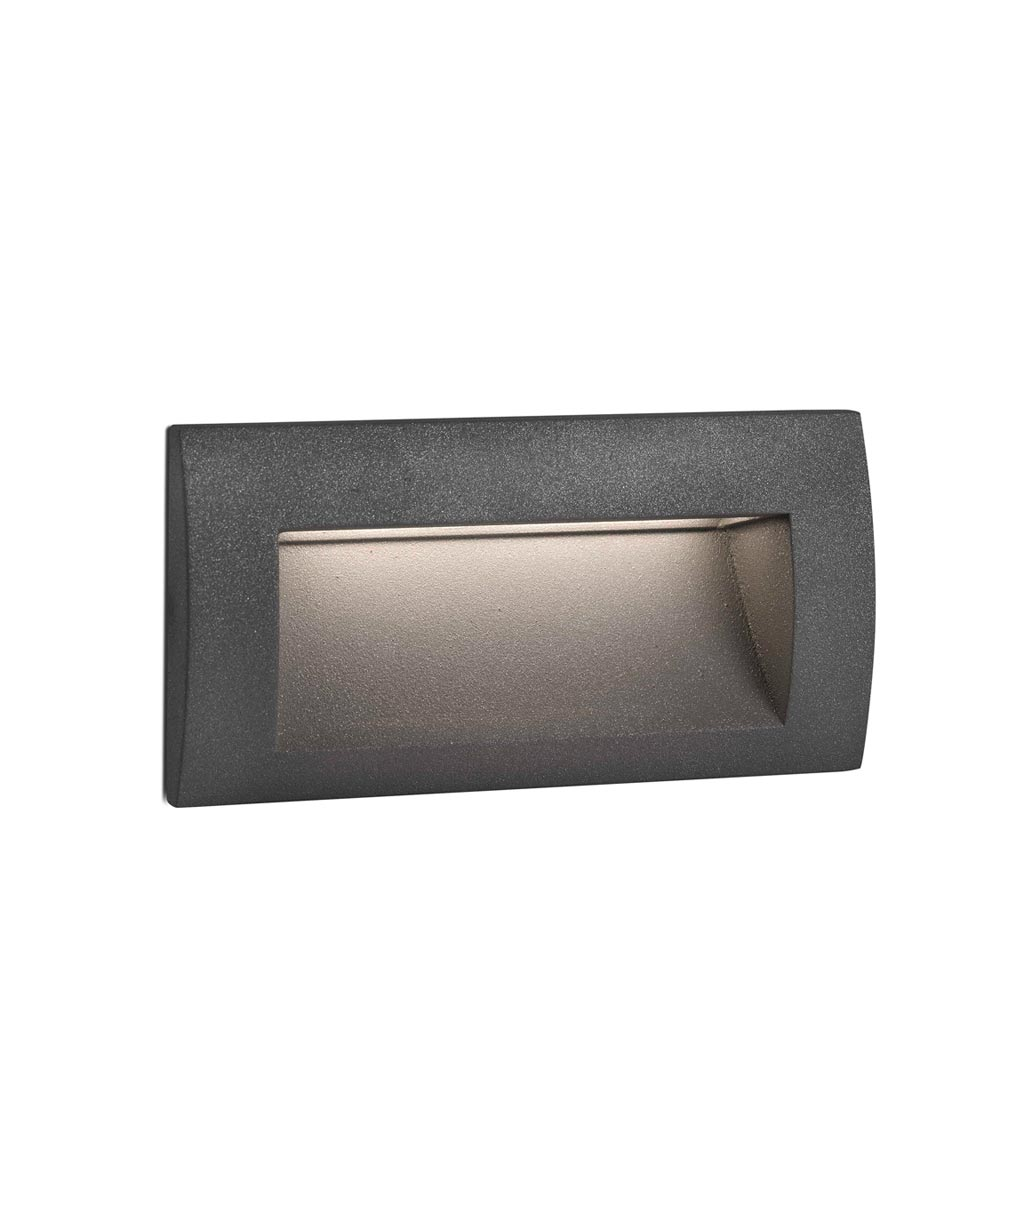 Empotrable SEDNA-2 LED gris oscuro